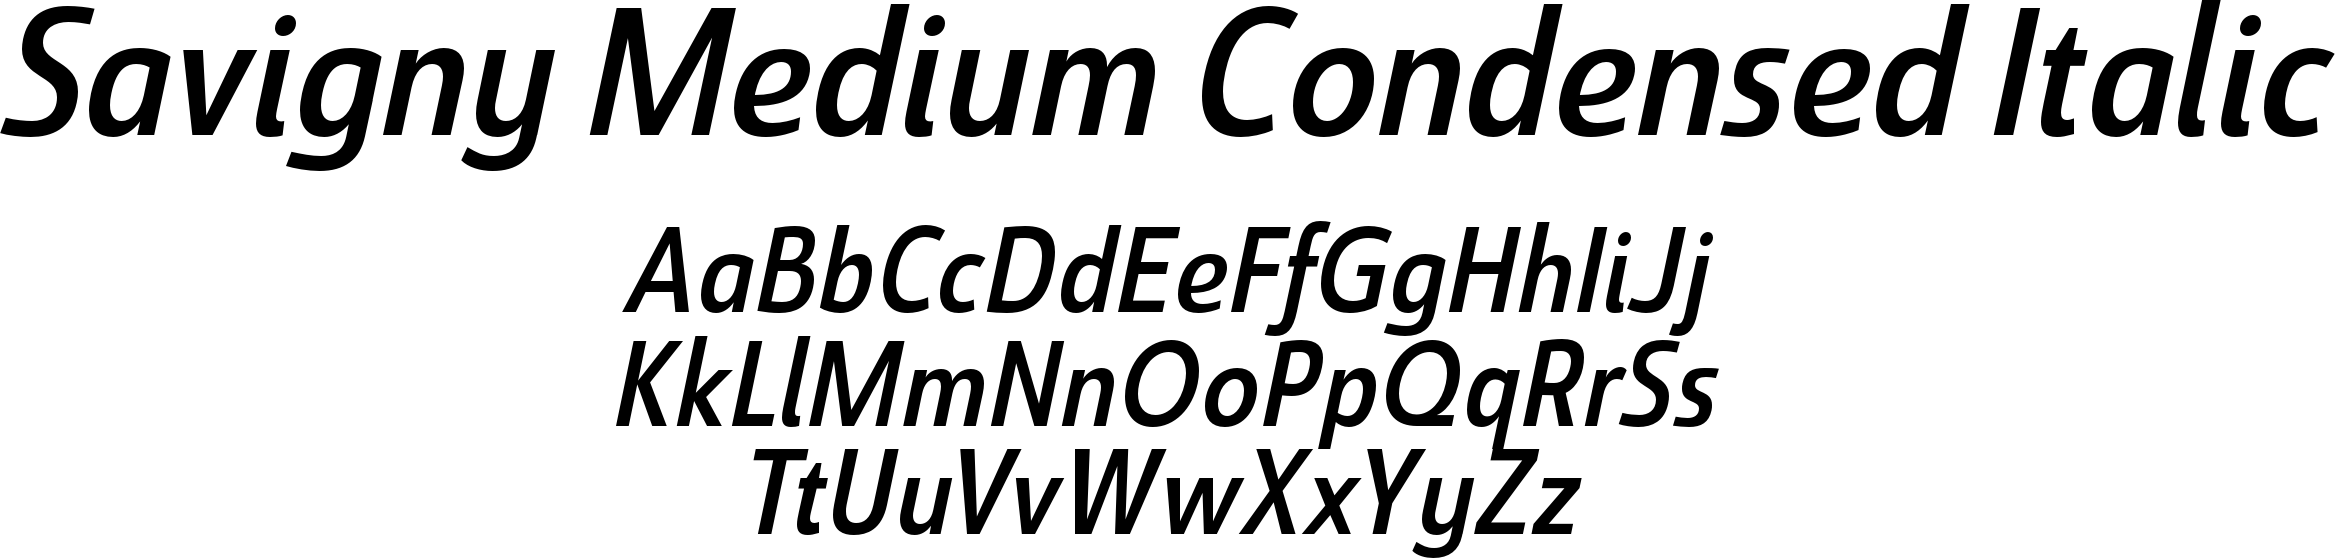 Savigny Medium Condensed Italic